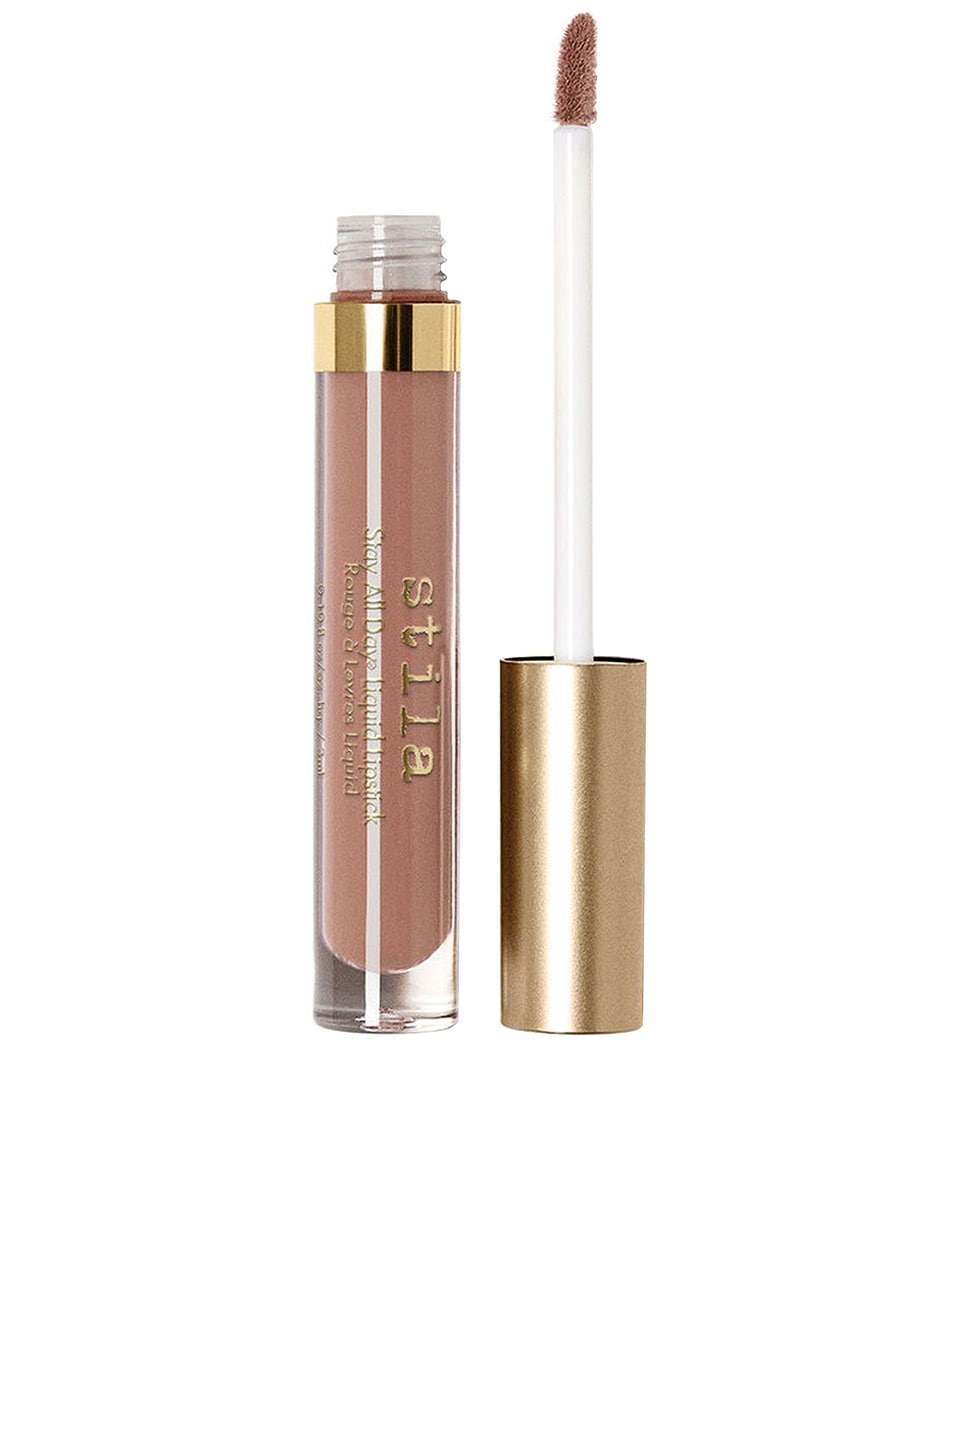 Stila Stay All Day Liquid Lipstick in Caramello